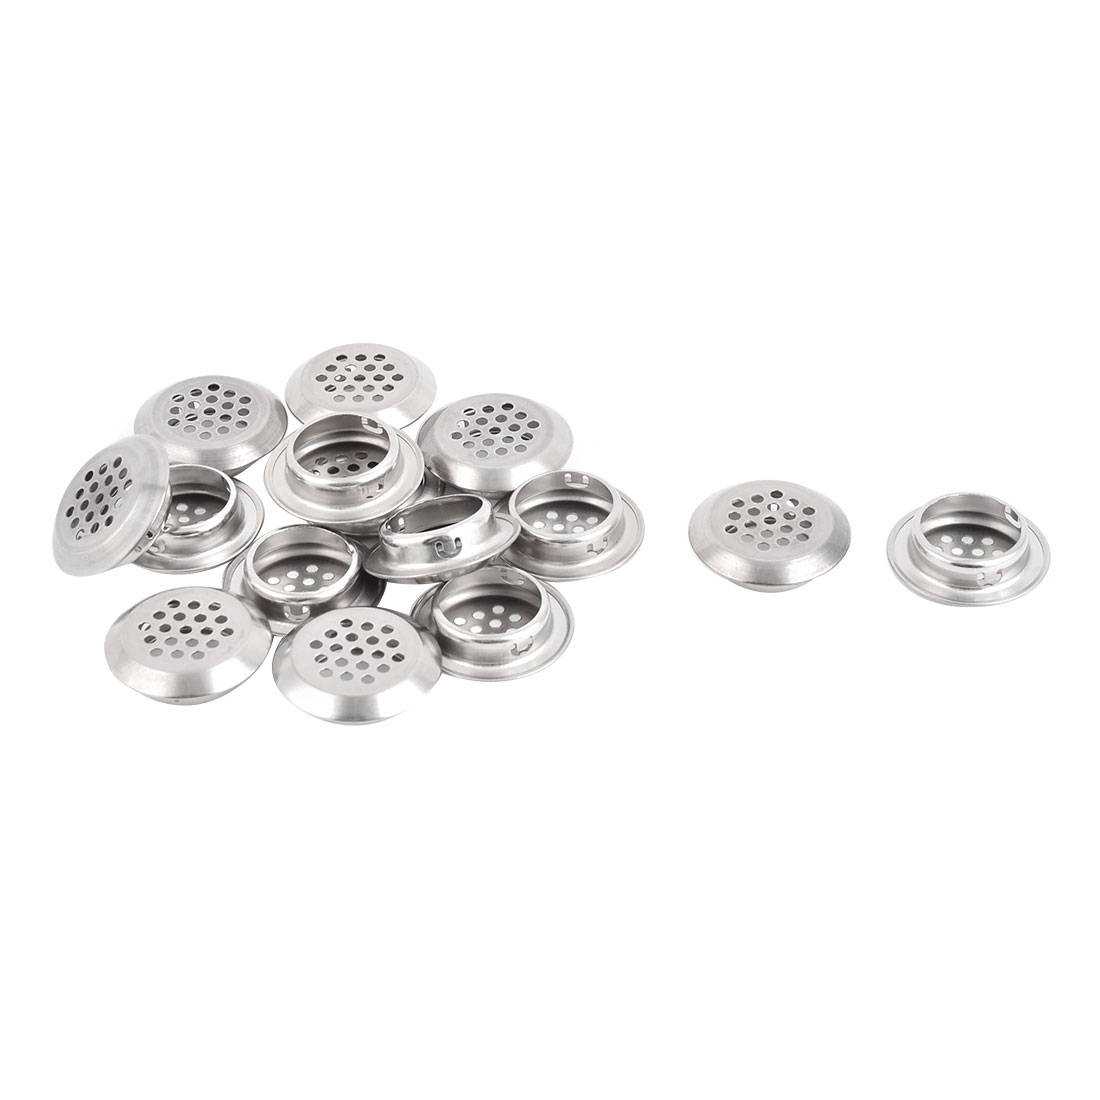 Hotel Dormitory Stainless Steel Round Sink Basin Residue Stopper Strainer 15 Pcs